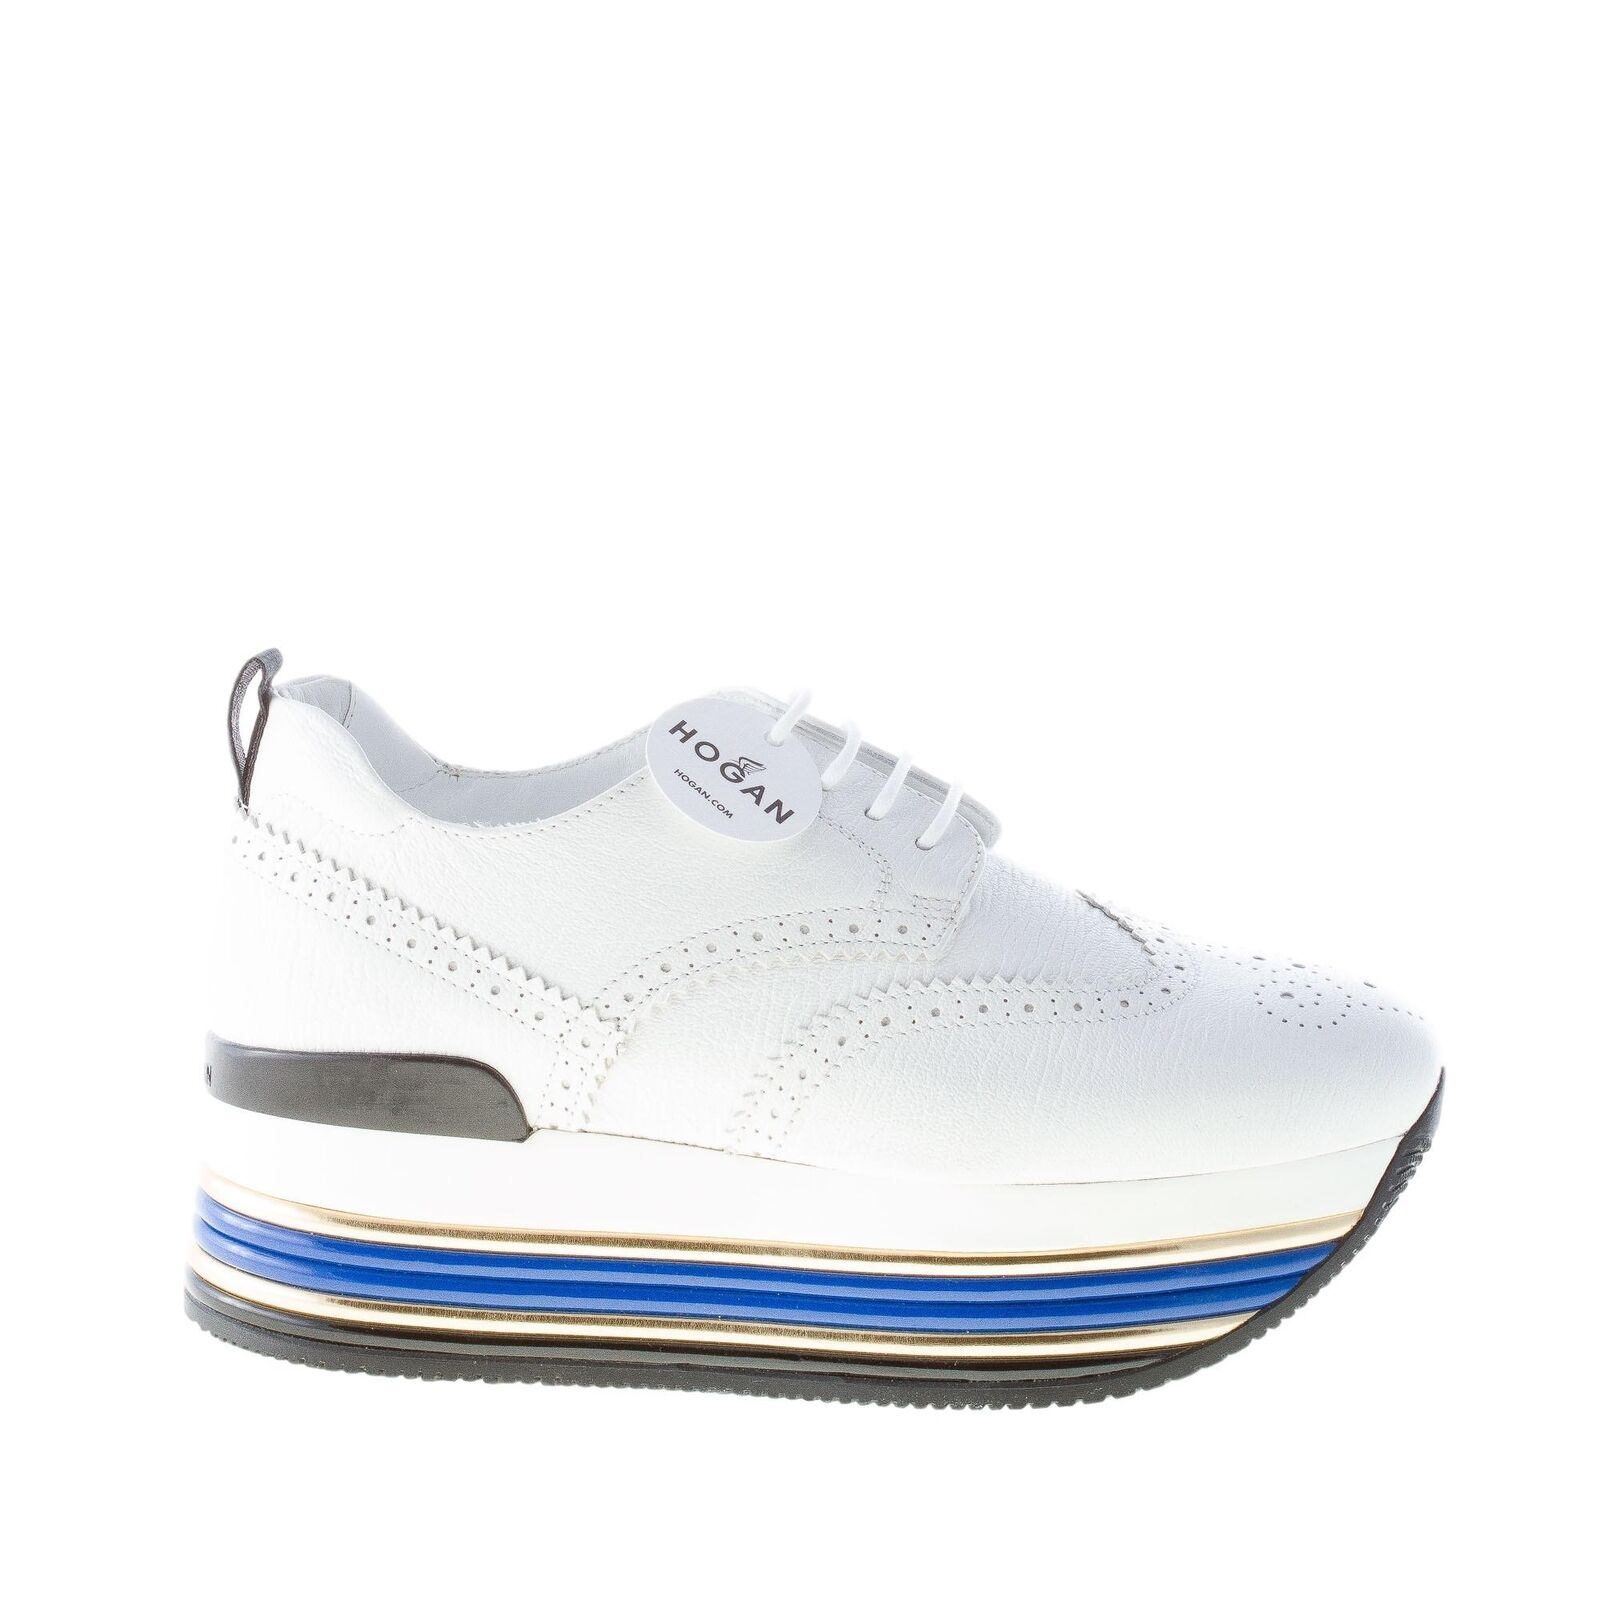 HOGAN shoes femme Maxi H222 white pebbled leather derby with wingtip detail